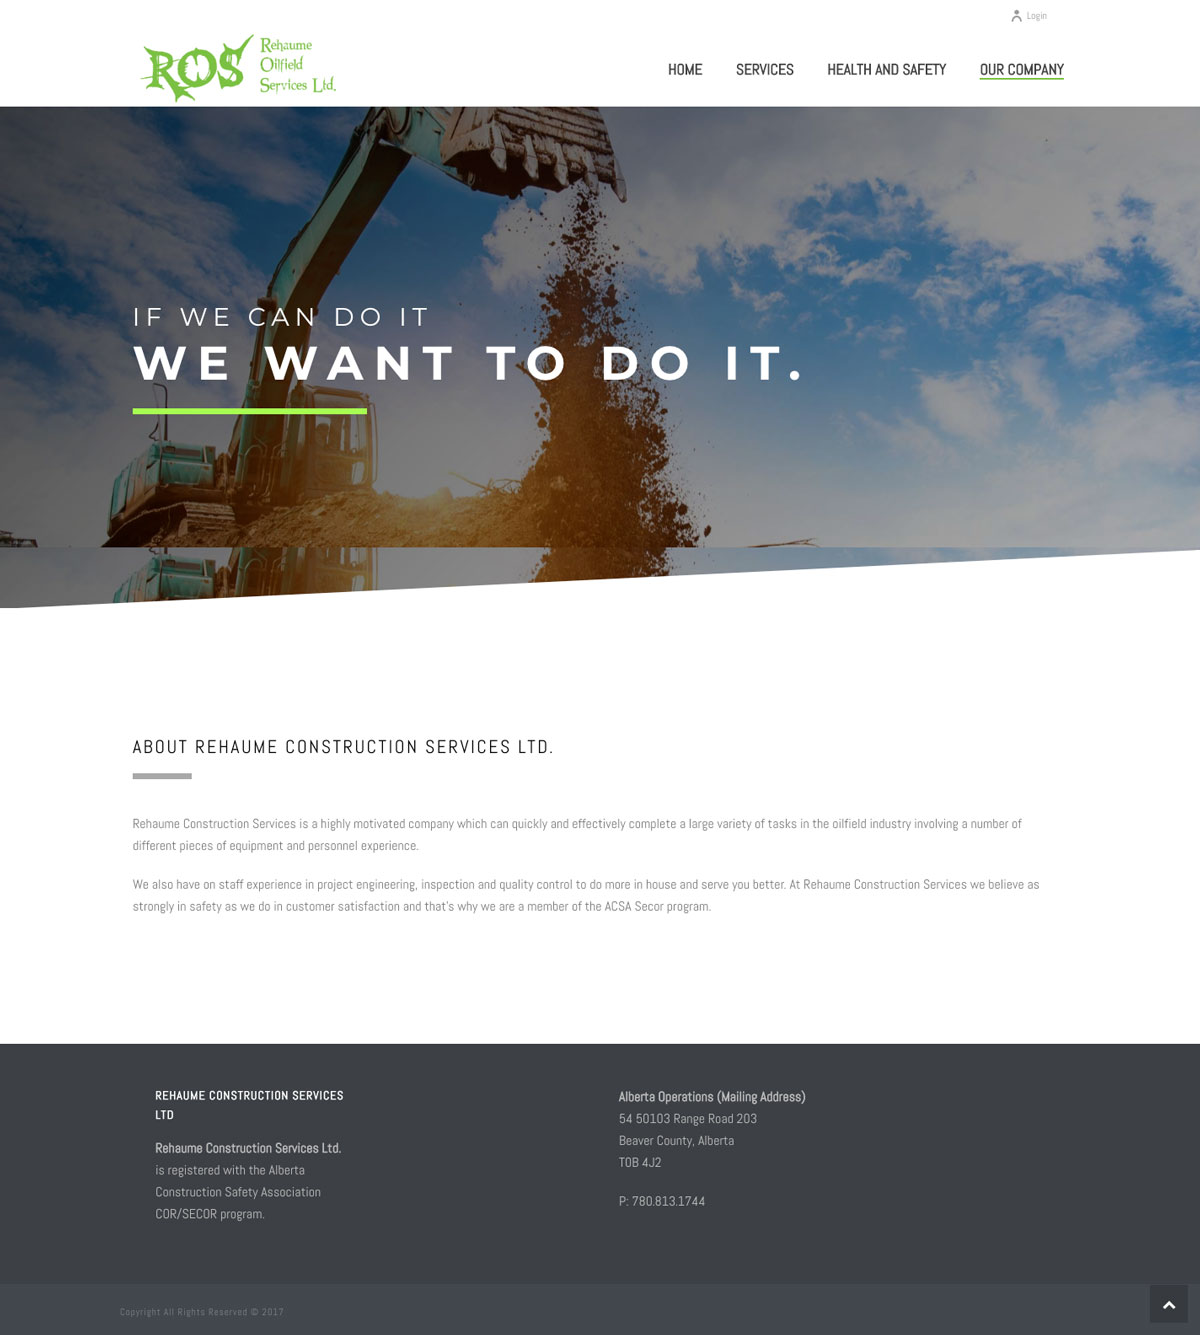 Rehaume Oilfield Services